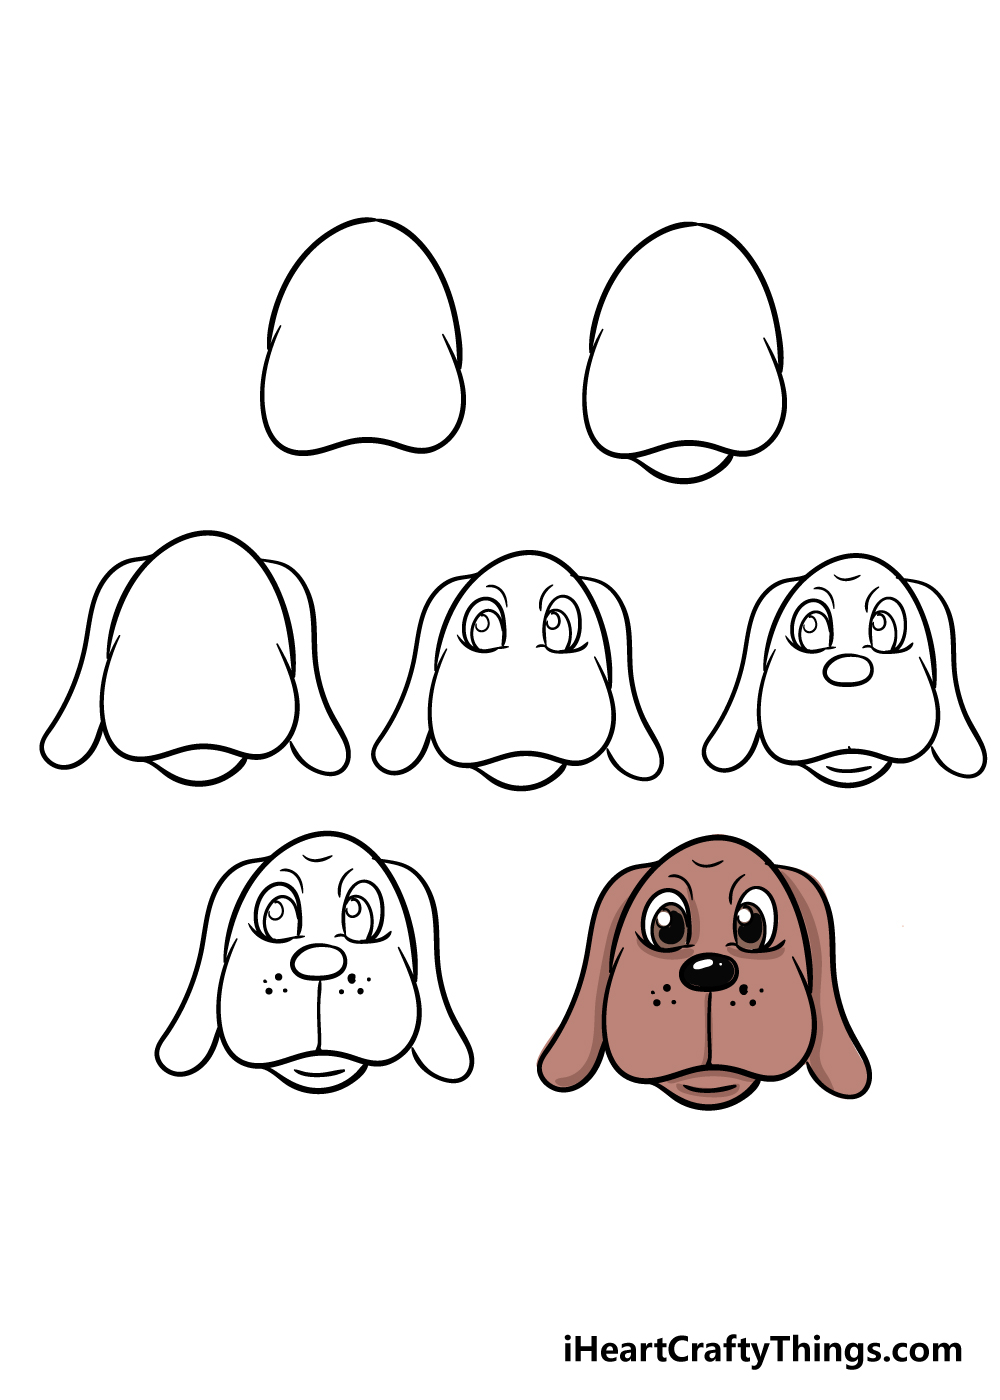 how to draw dog face in 7 steps